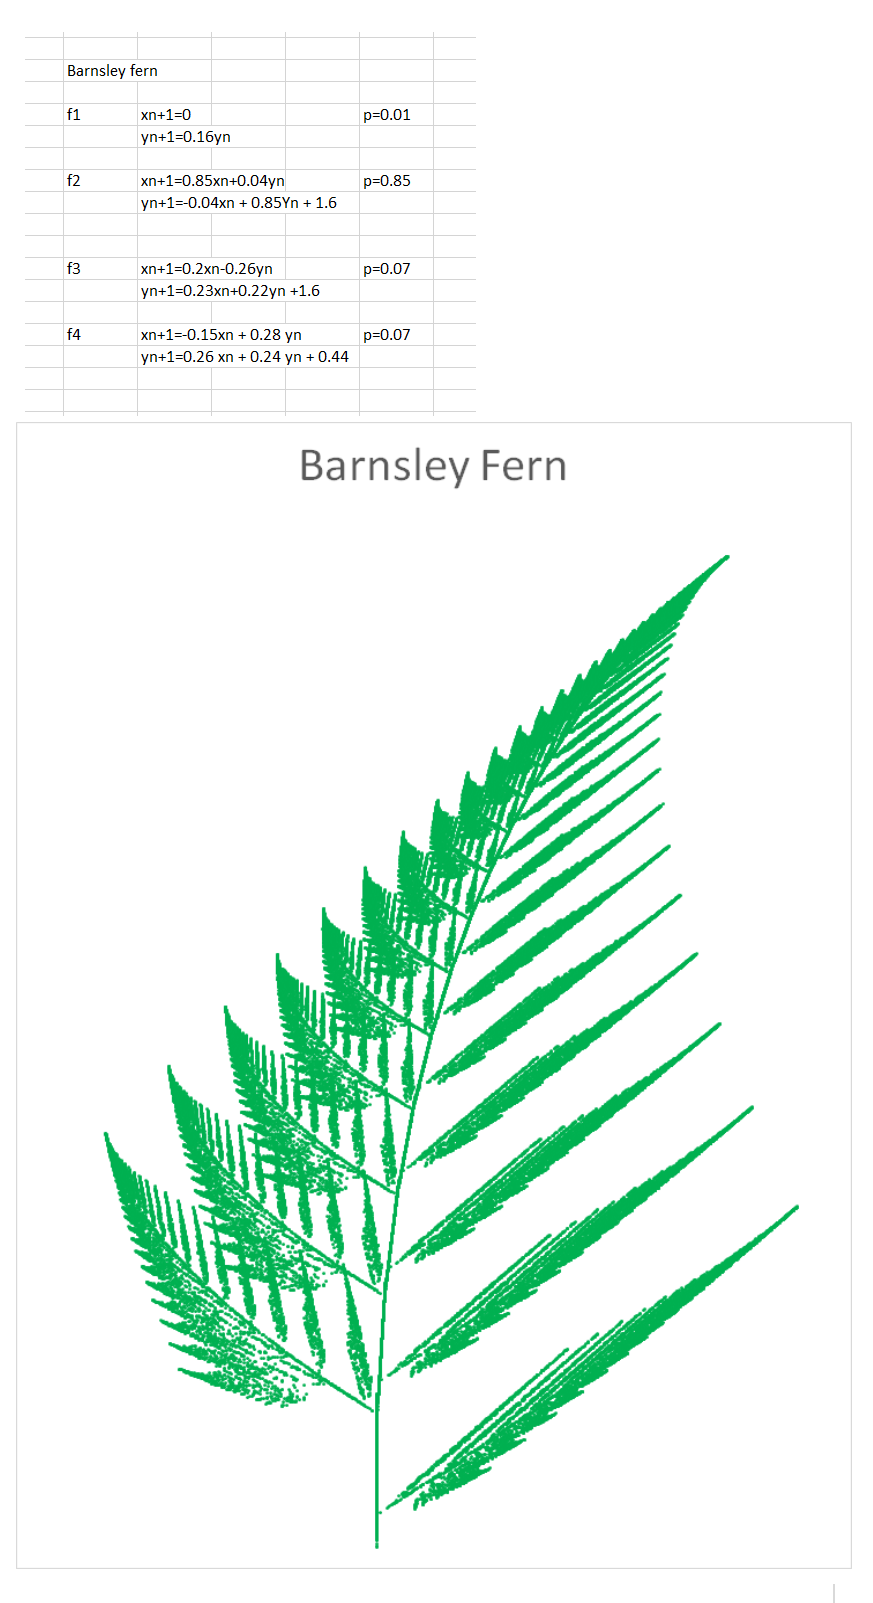 Barnsley Fern in Excel.png